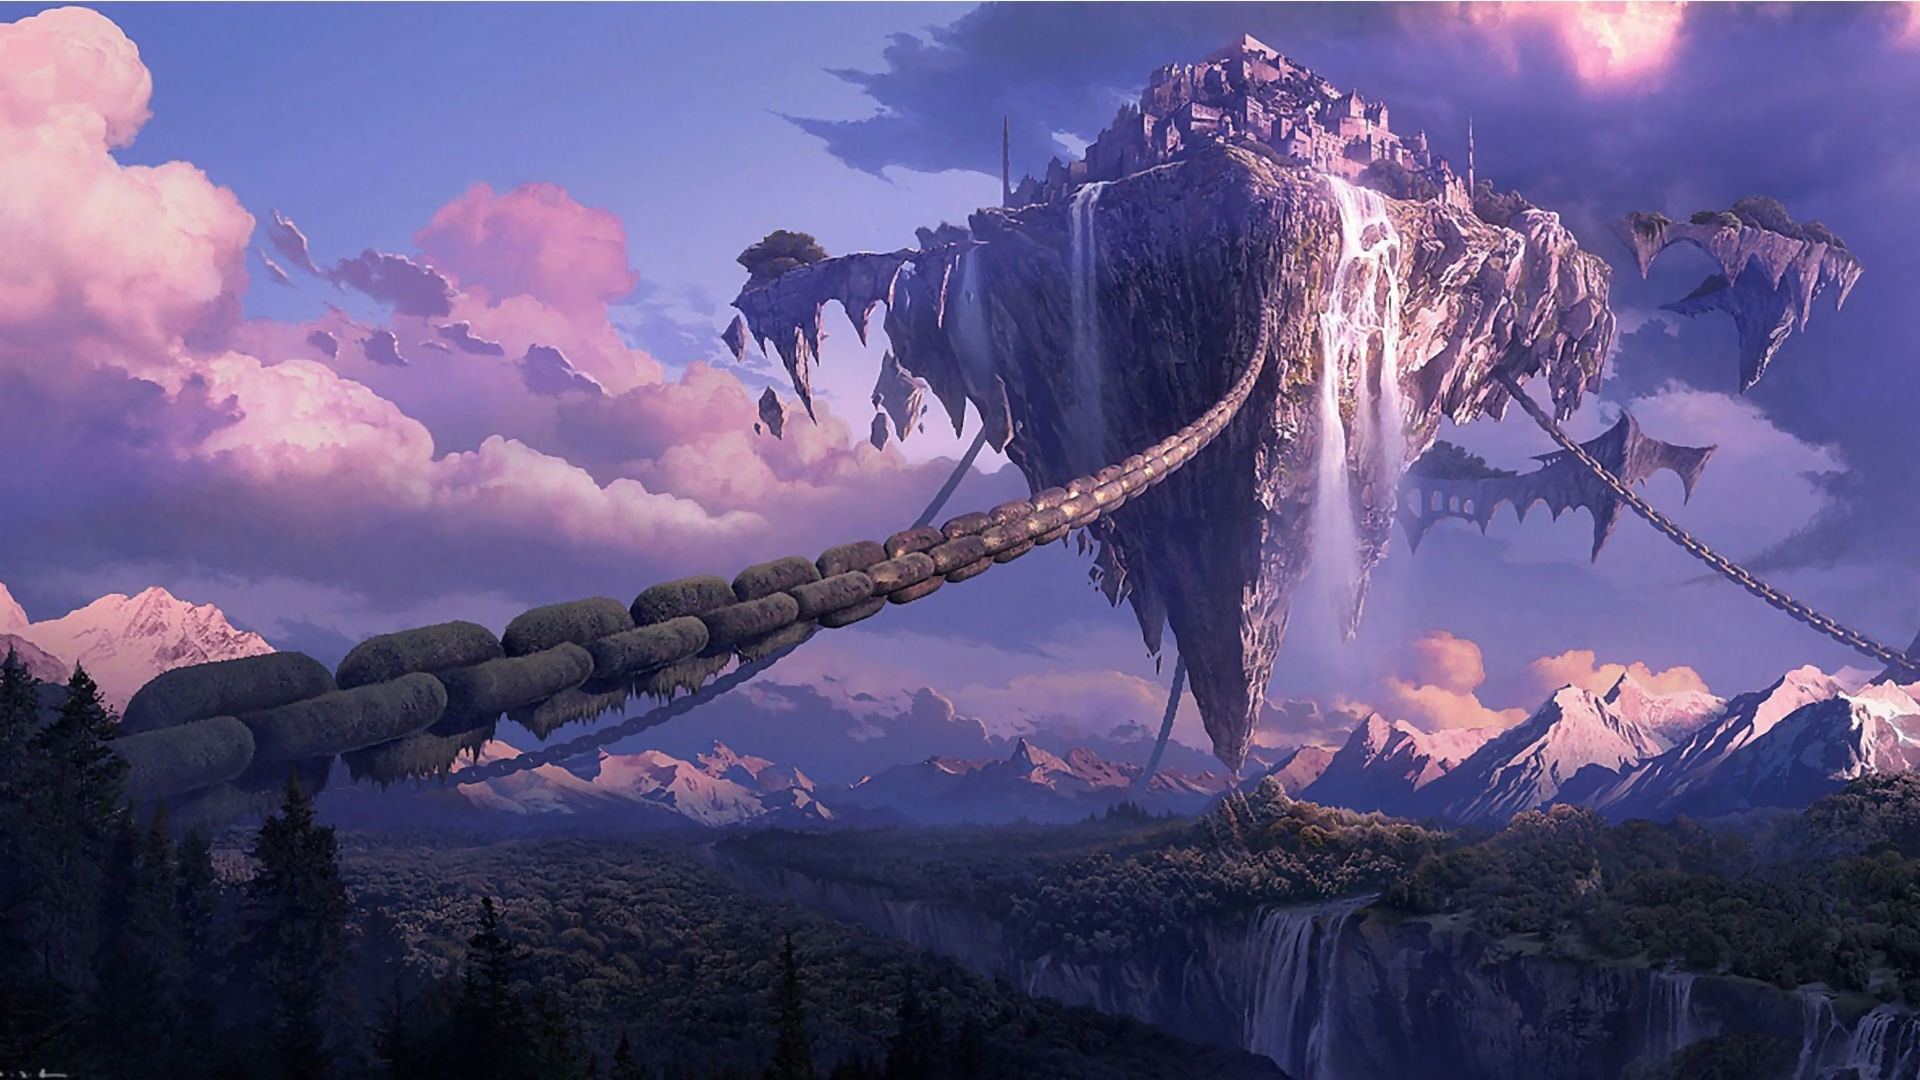 1920x1080 General  chains landscape Tera online digital art anime waterfall  fantasy art forest mountain floating island